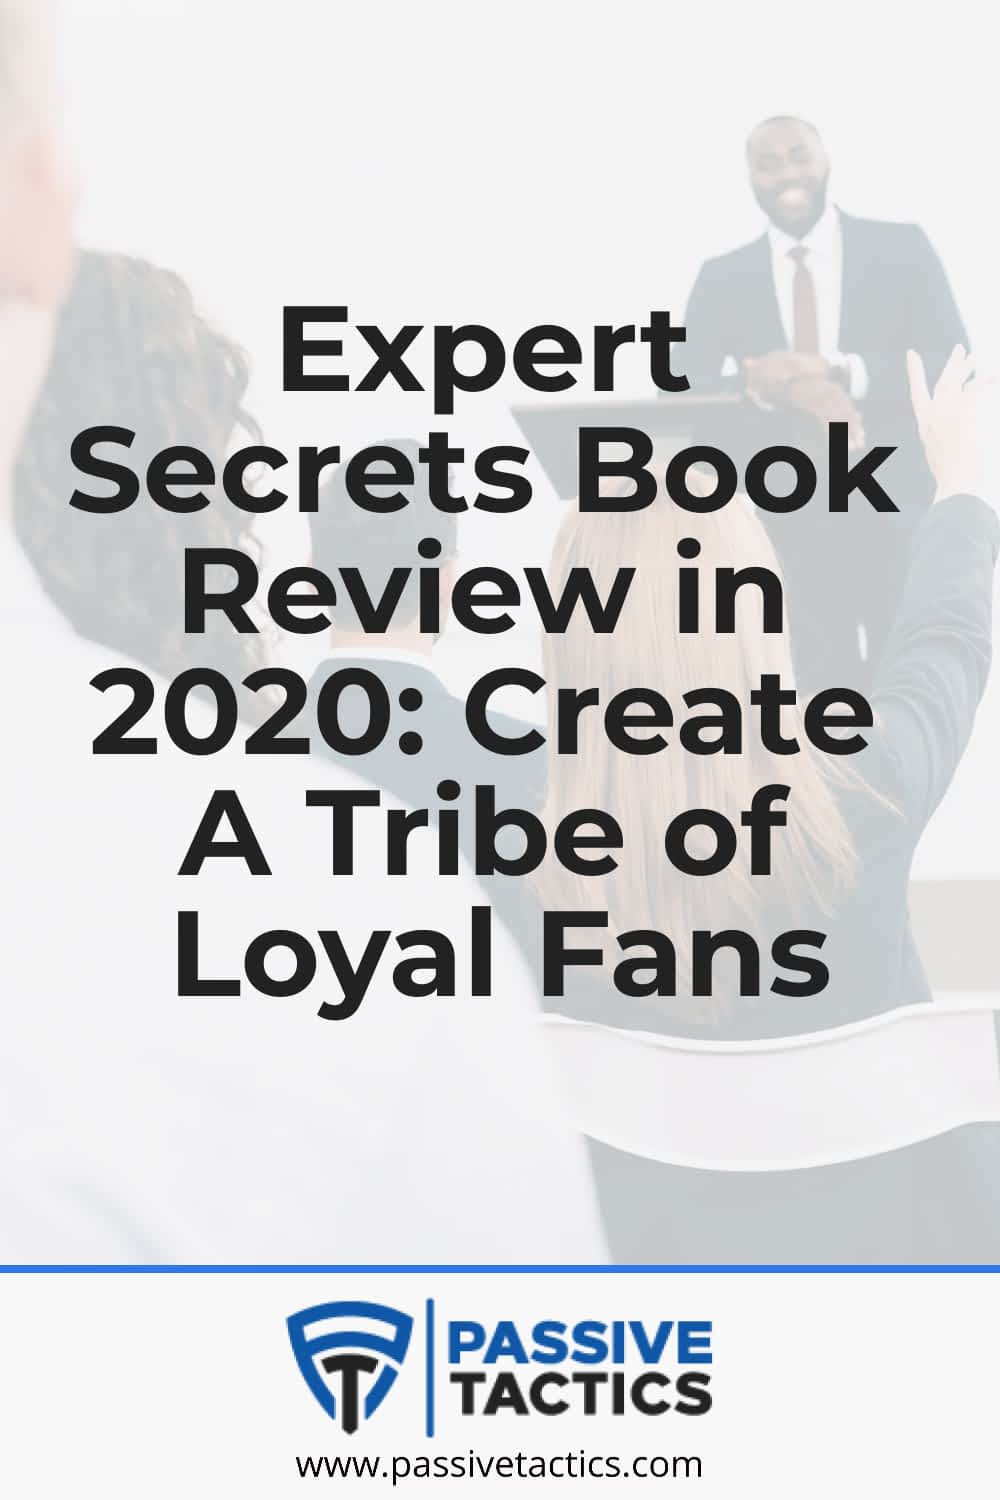 Expert Secrets Book Review in 2021: Create A Tribe of Loyal Fans